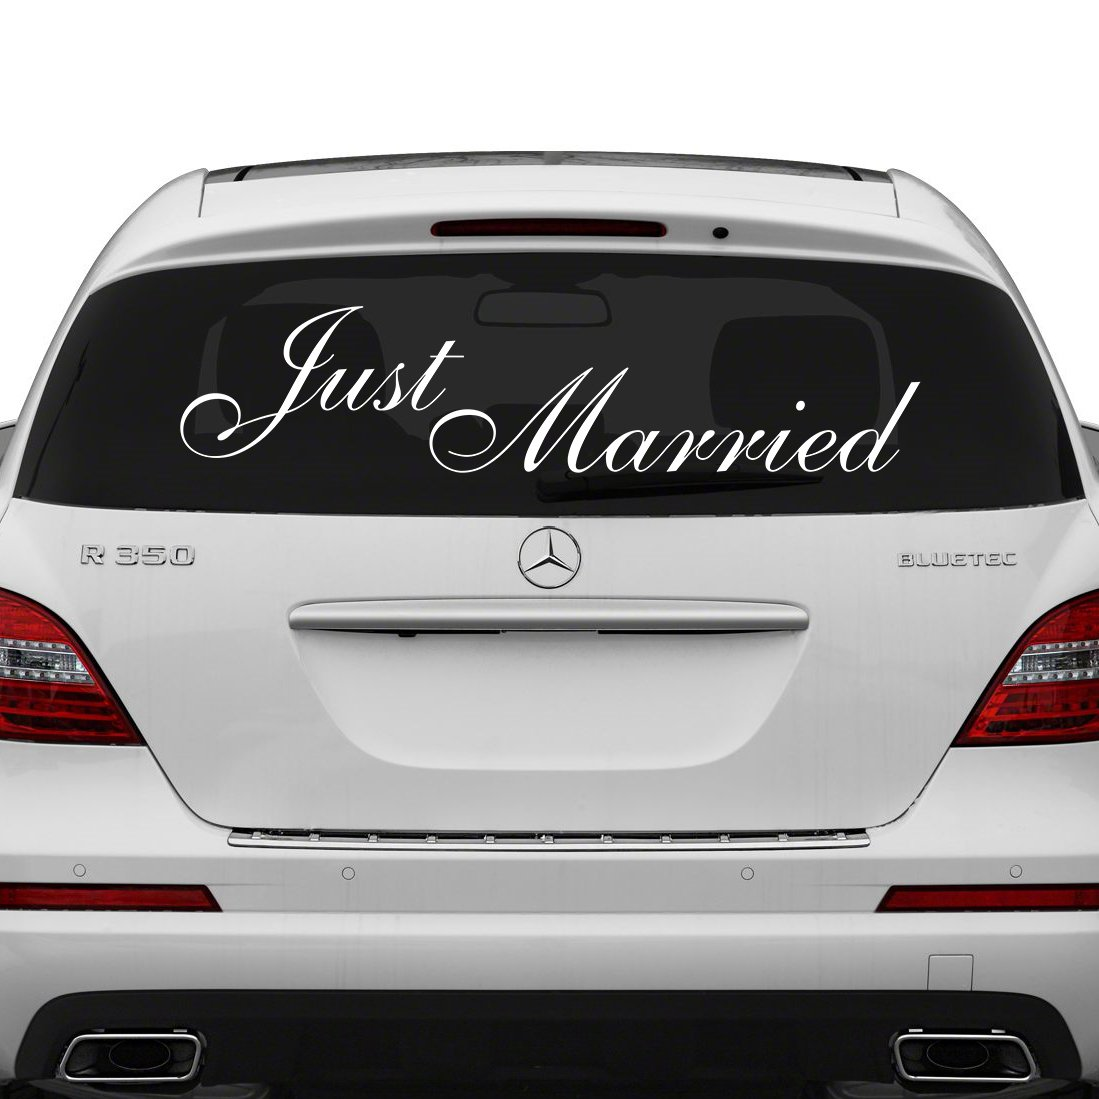 28 x 10 just married vinyl car decal design wedding cling banner decoration quote sticker decals back car window mirror free random decal gift